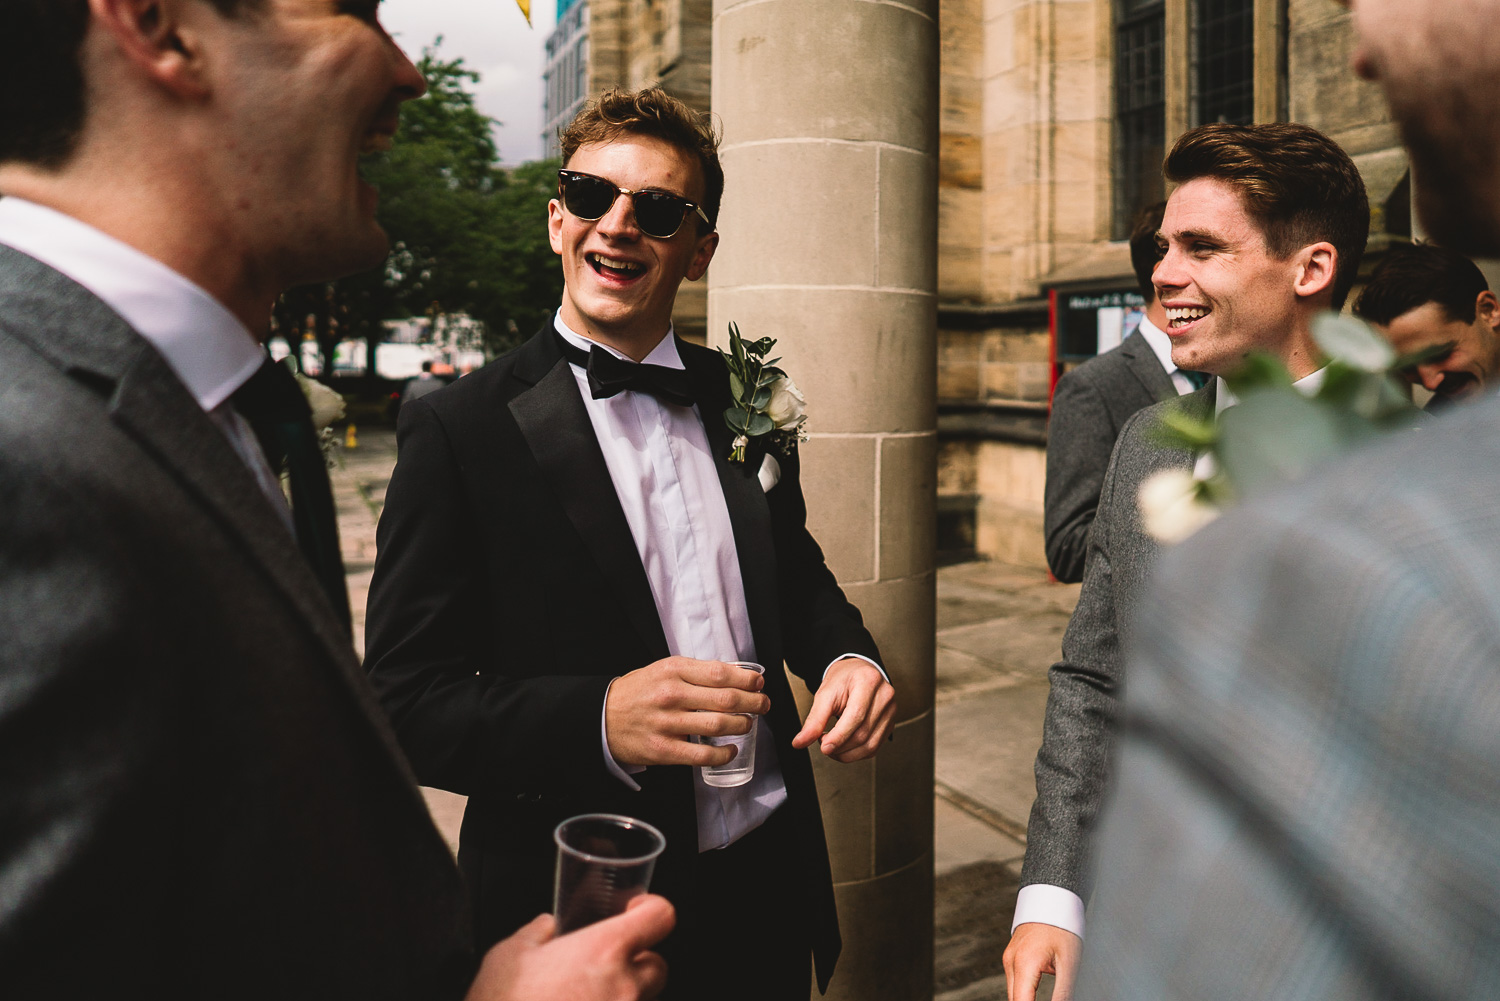 Groom in tux and sunglasses laughing and having fun with Groomsmen outside of Sheffield wedding venue before the ceremony in Sheffield